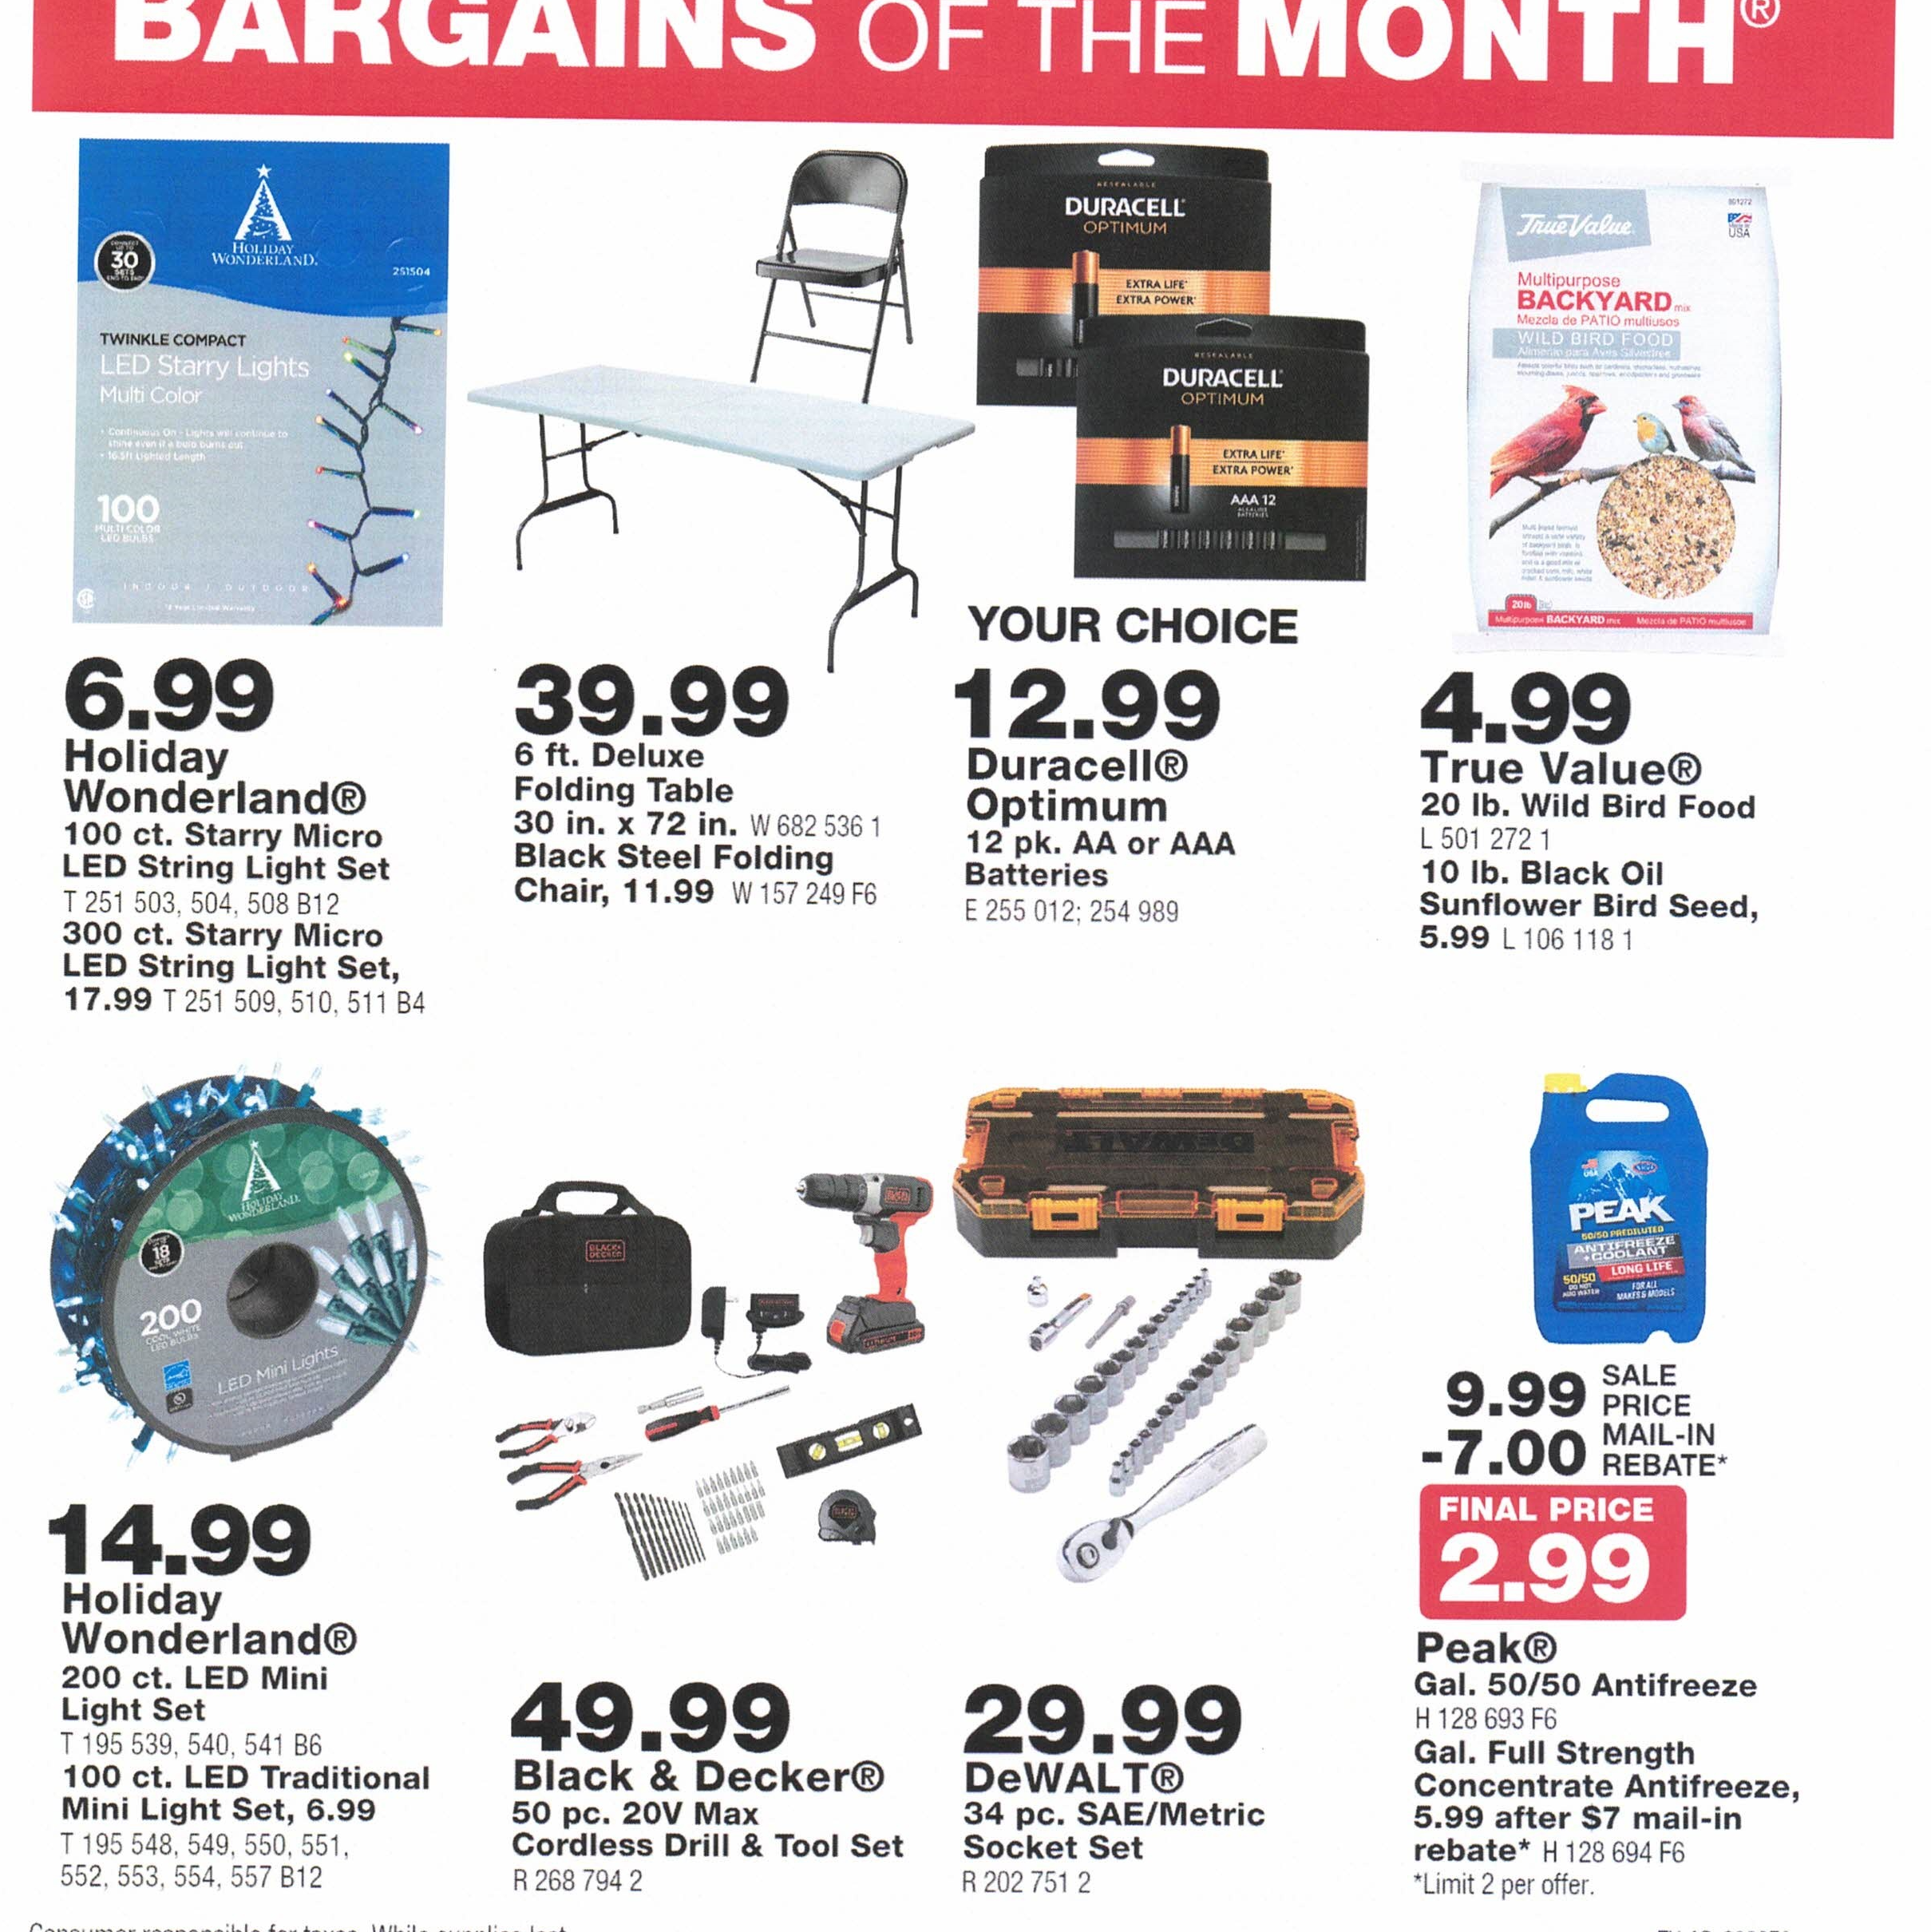 NOVEMBER BARGAIN OF THE MONTH